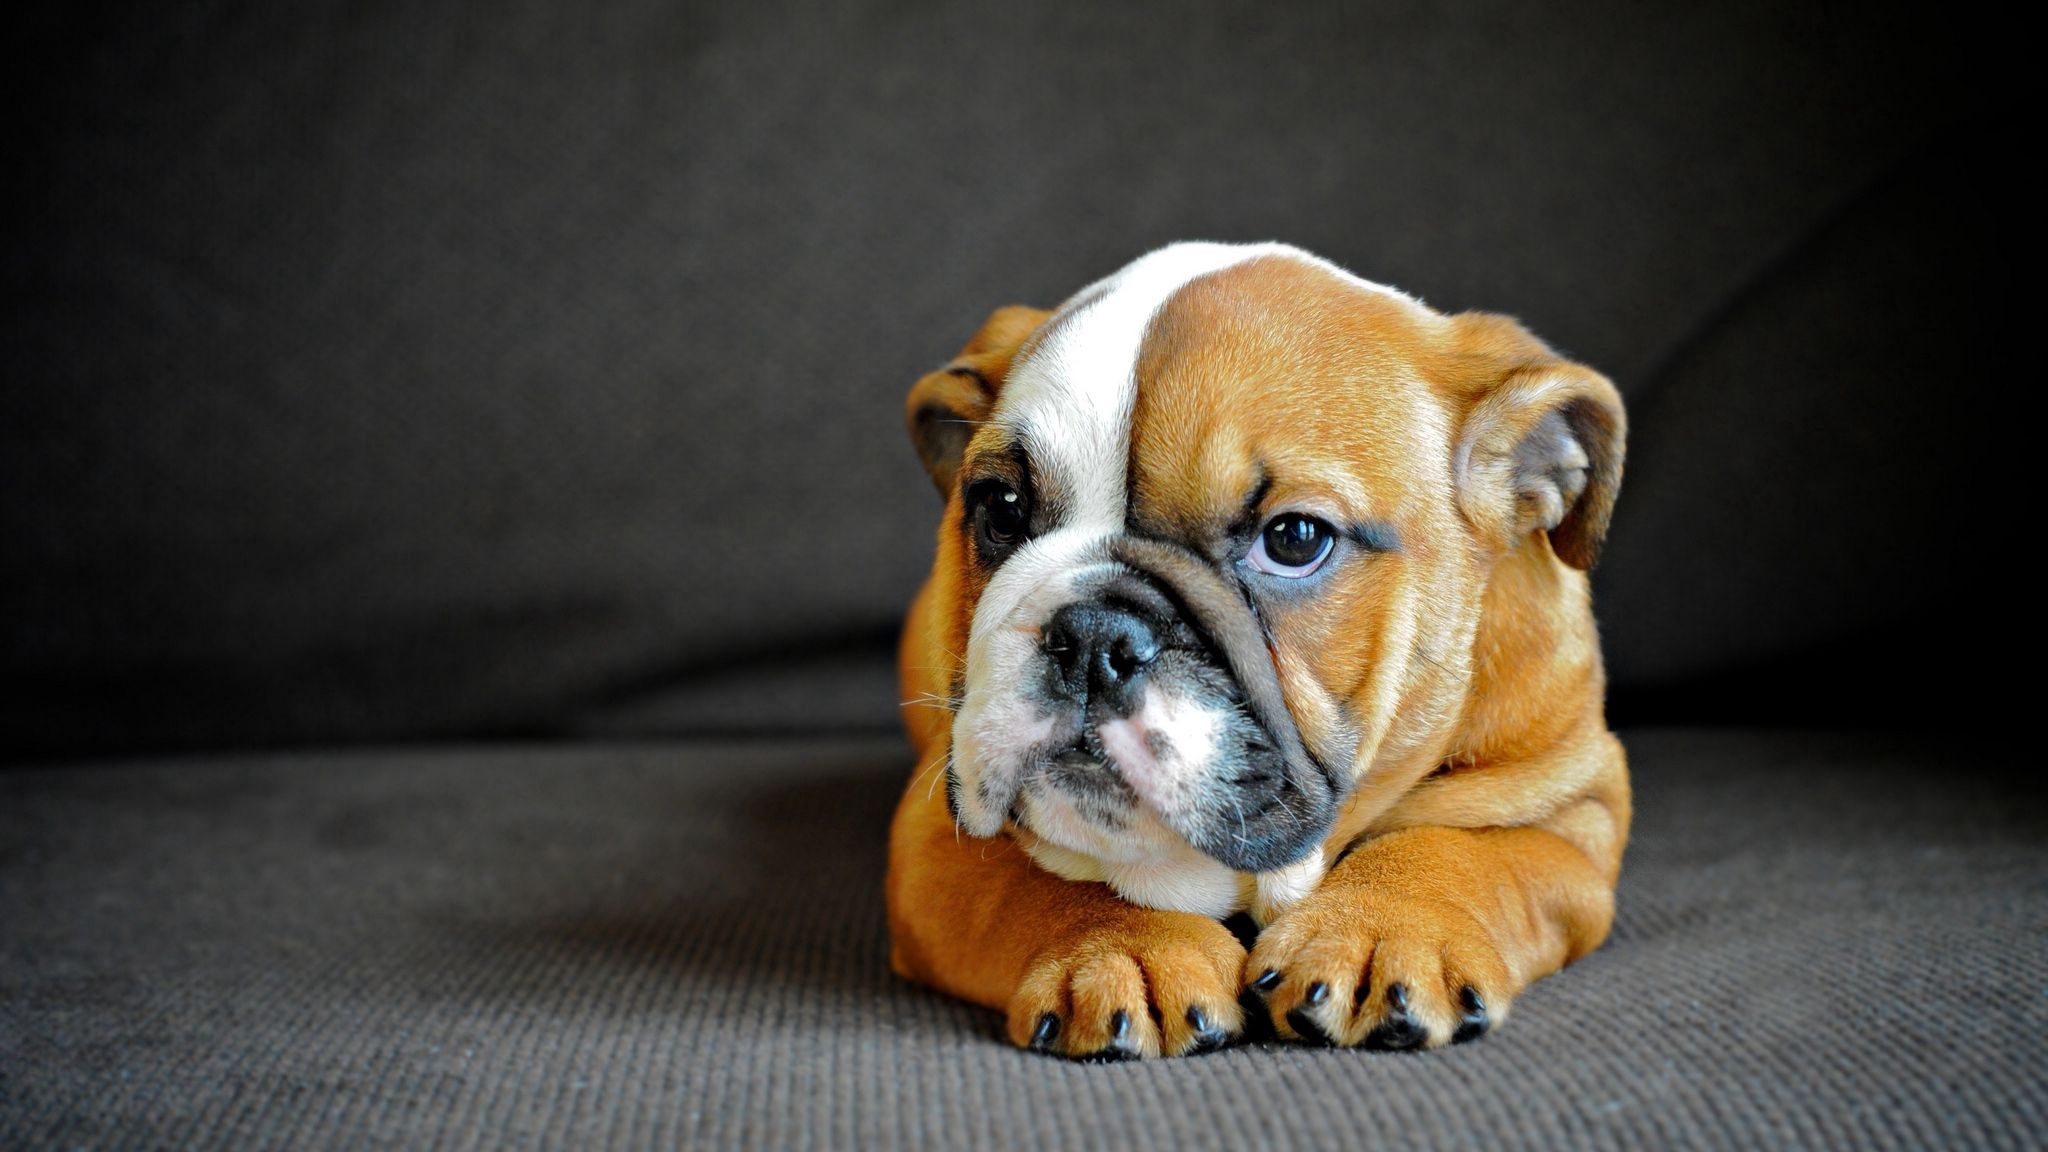 72407 download wallpaper Animals, English Bulldog, Puppy, Dog, Muzzle, Sight, Opinion screensavers and pictures for free